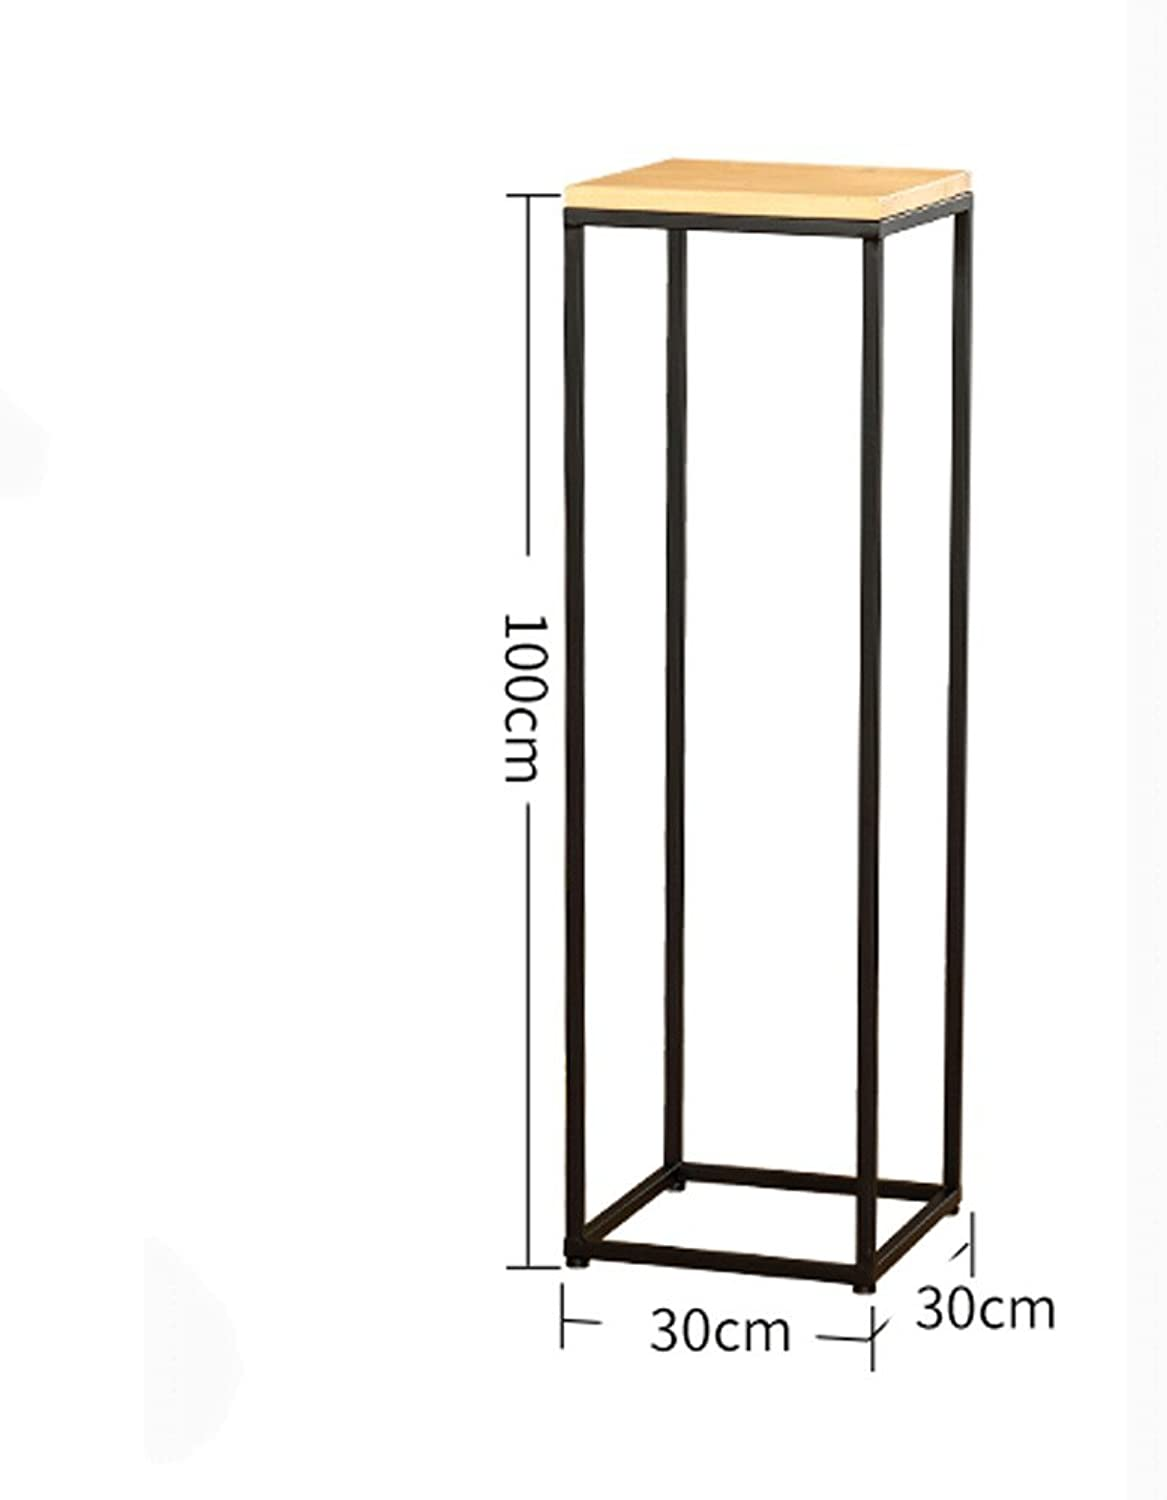 Qing MEI Simple Modern Wrought Iron Solid Wood Floor Flower Pot Pot Rack Living Room Balcony Green Flower Stand Ladder Multi-Layer Flower Stand A++ (color   C)